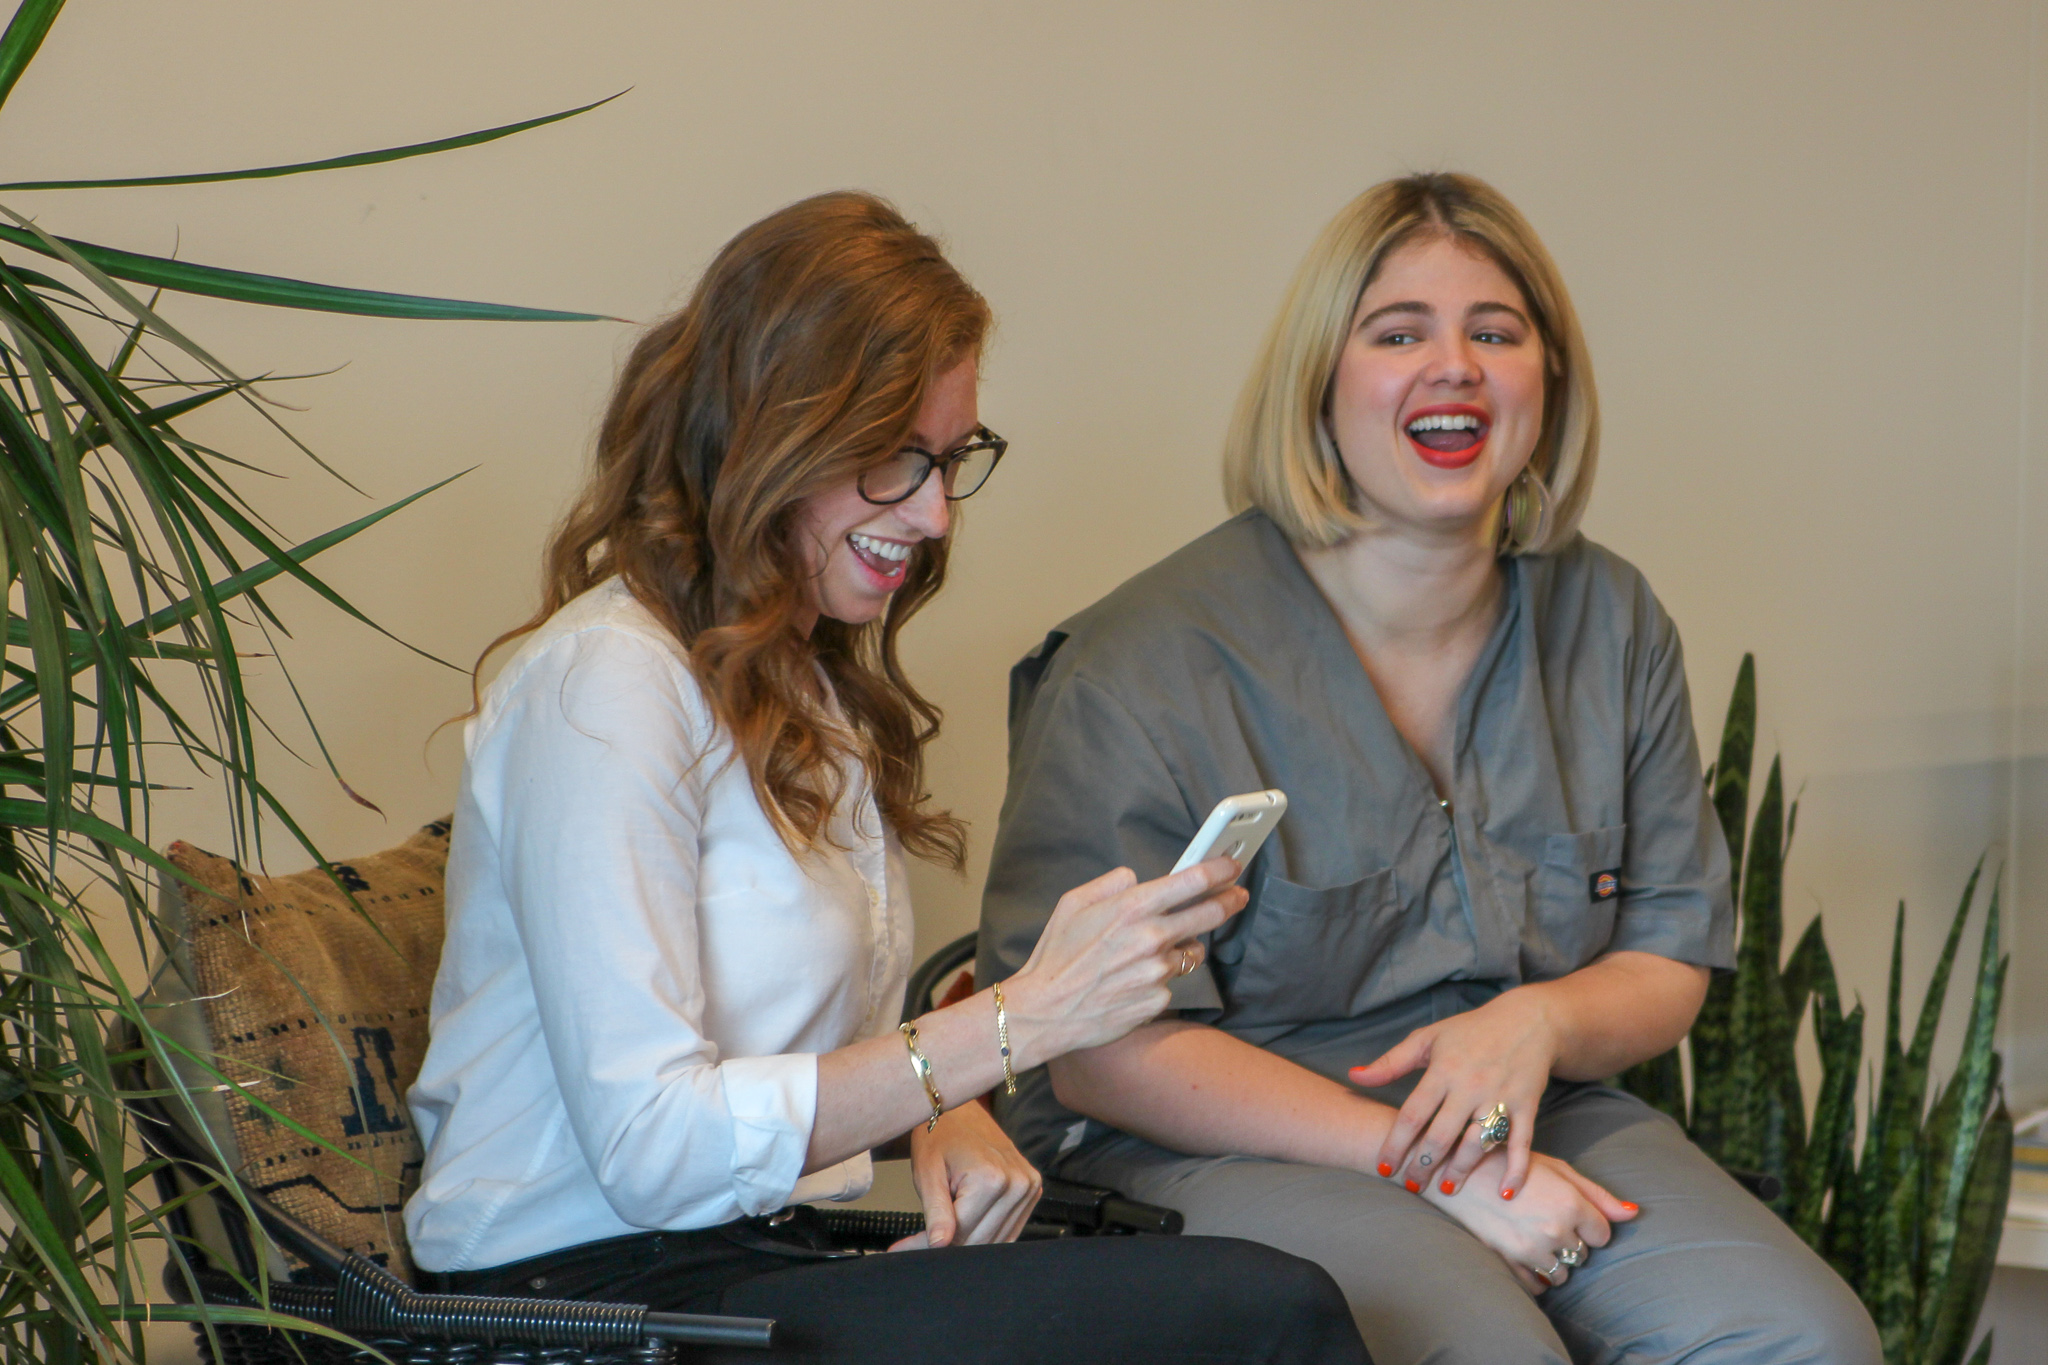 A * candid * laugh with Jane.